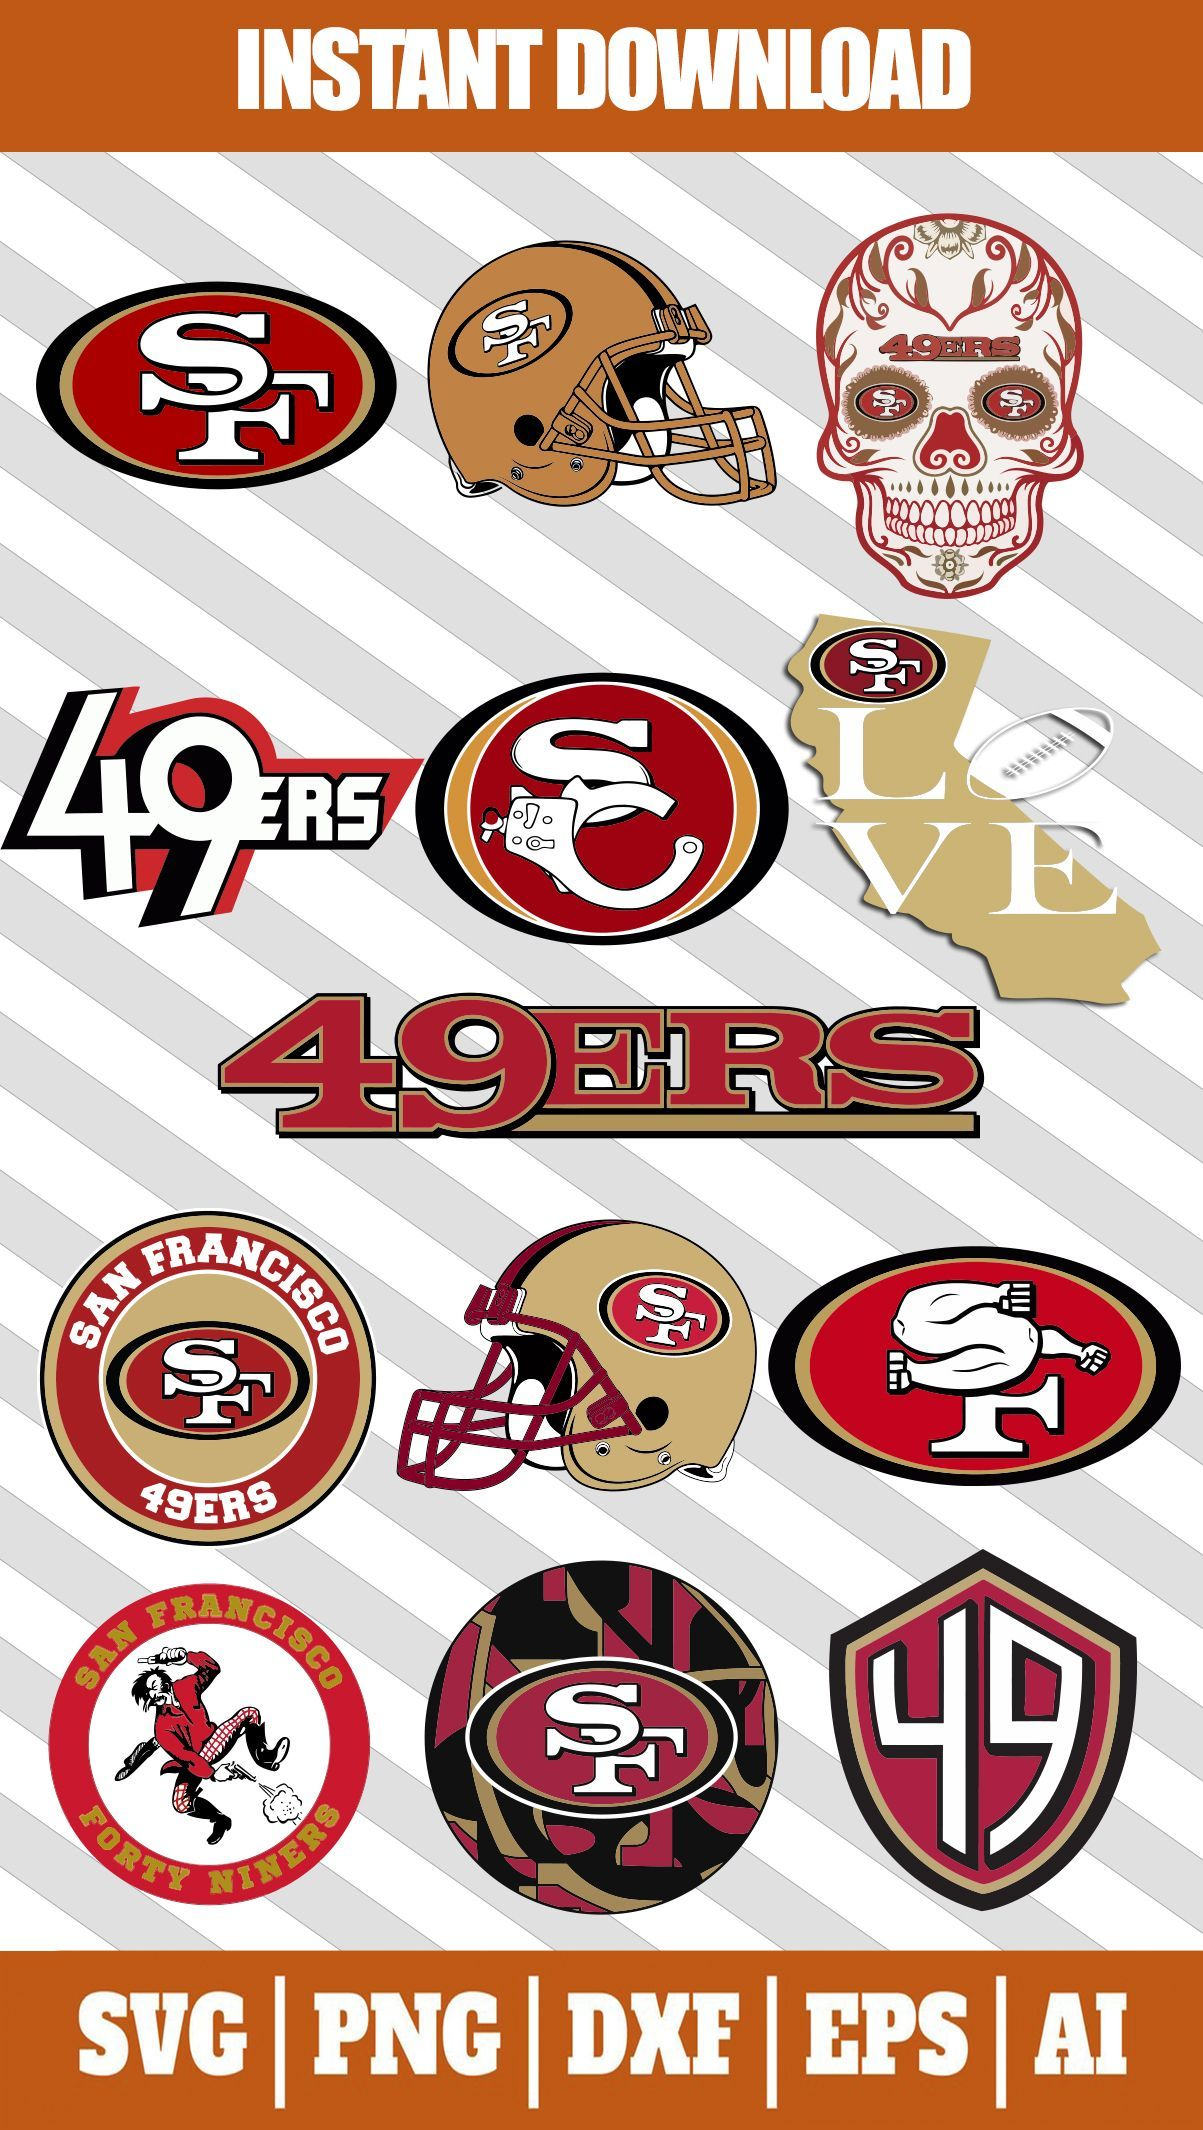 San Francisco 49ers Svg Free : francisco, 49ers, Snowboarding, #francisco, #49ers, Francisco, Free,, Shirts, Logo,, 49ers,